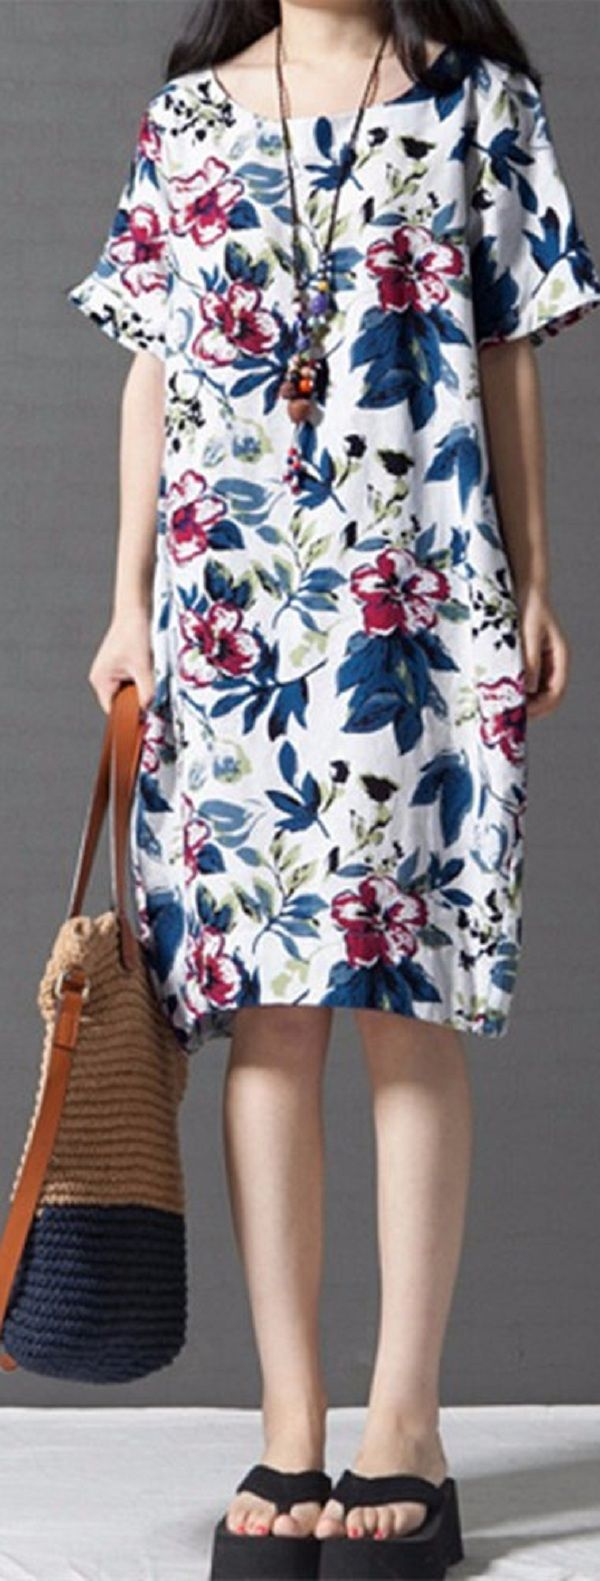 US$ 11.53 Vintage Women Short Sleeve Baggy Floral Printed Cotton Dress